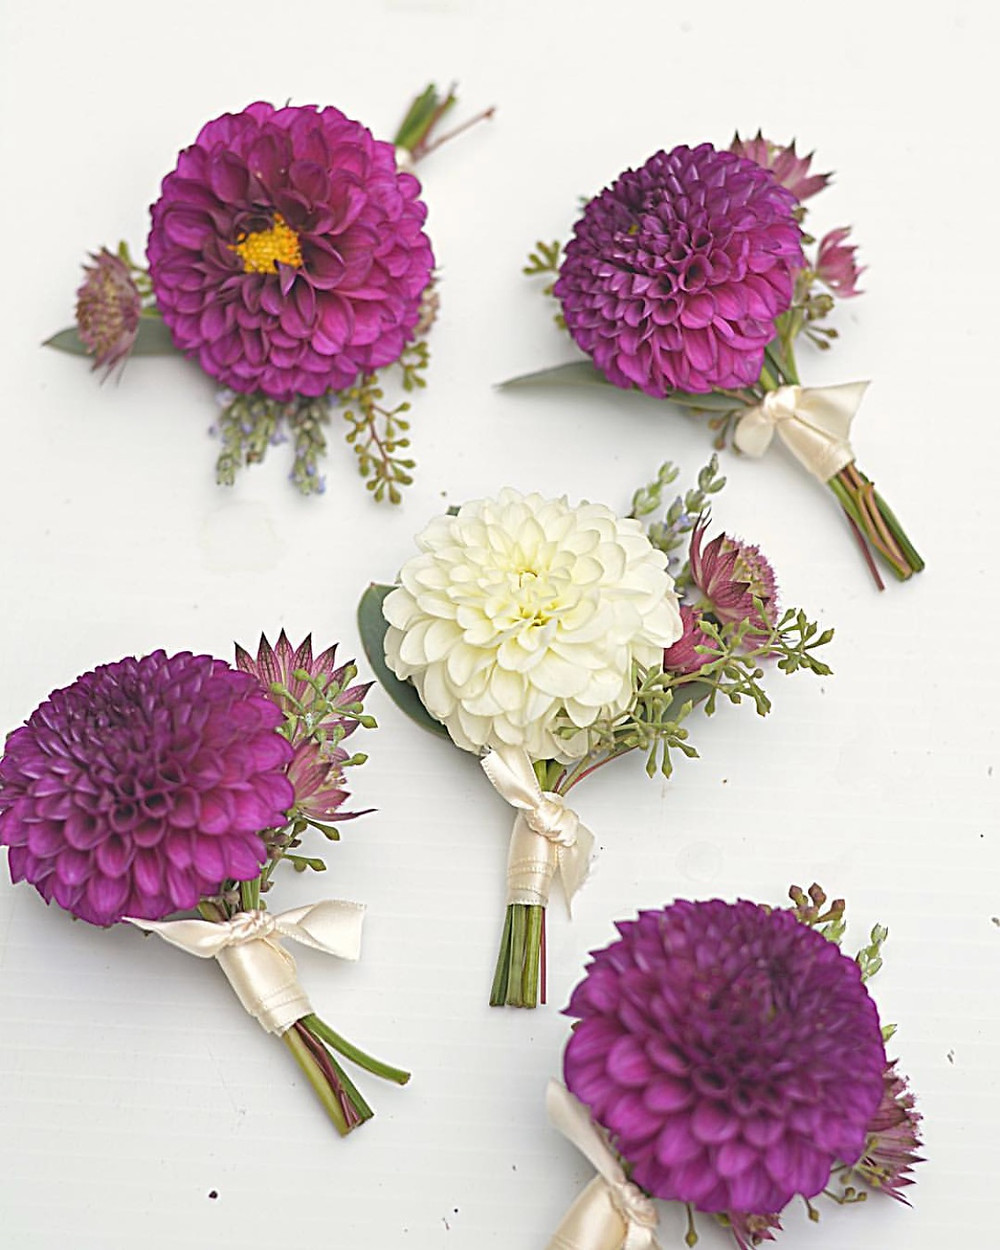 Small Pompon Dahlia boutonnieres with Astrantias, Lavenders, and seeded Eucalyptus